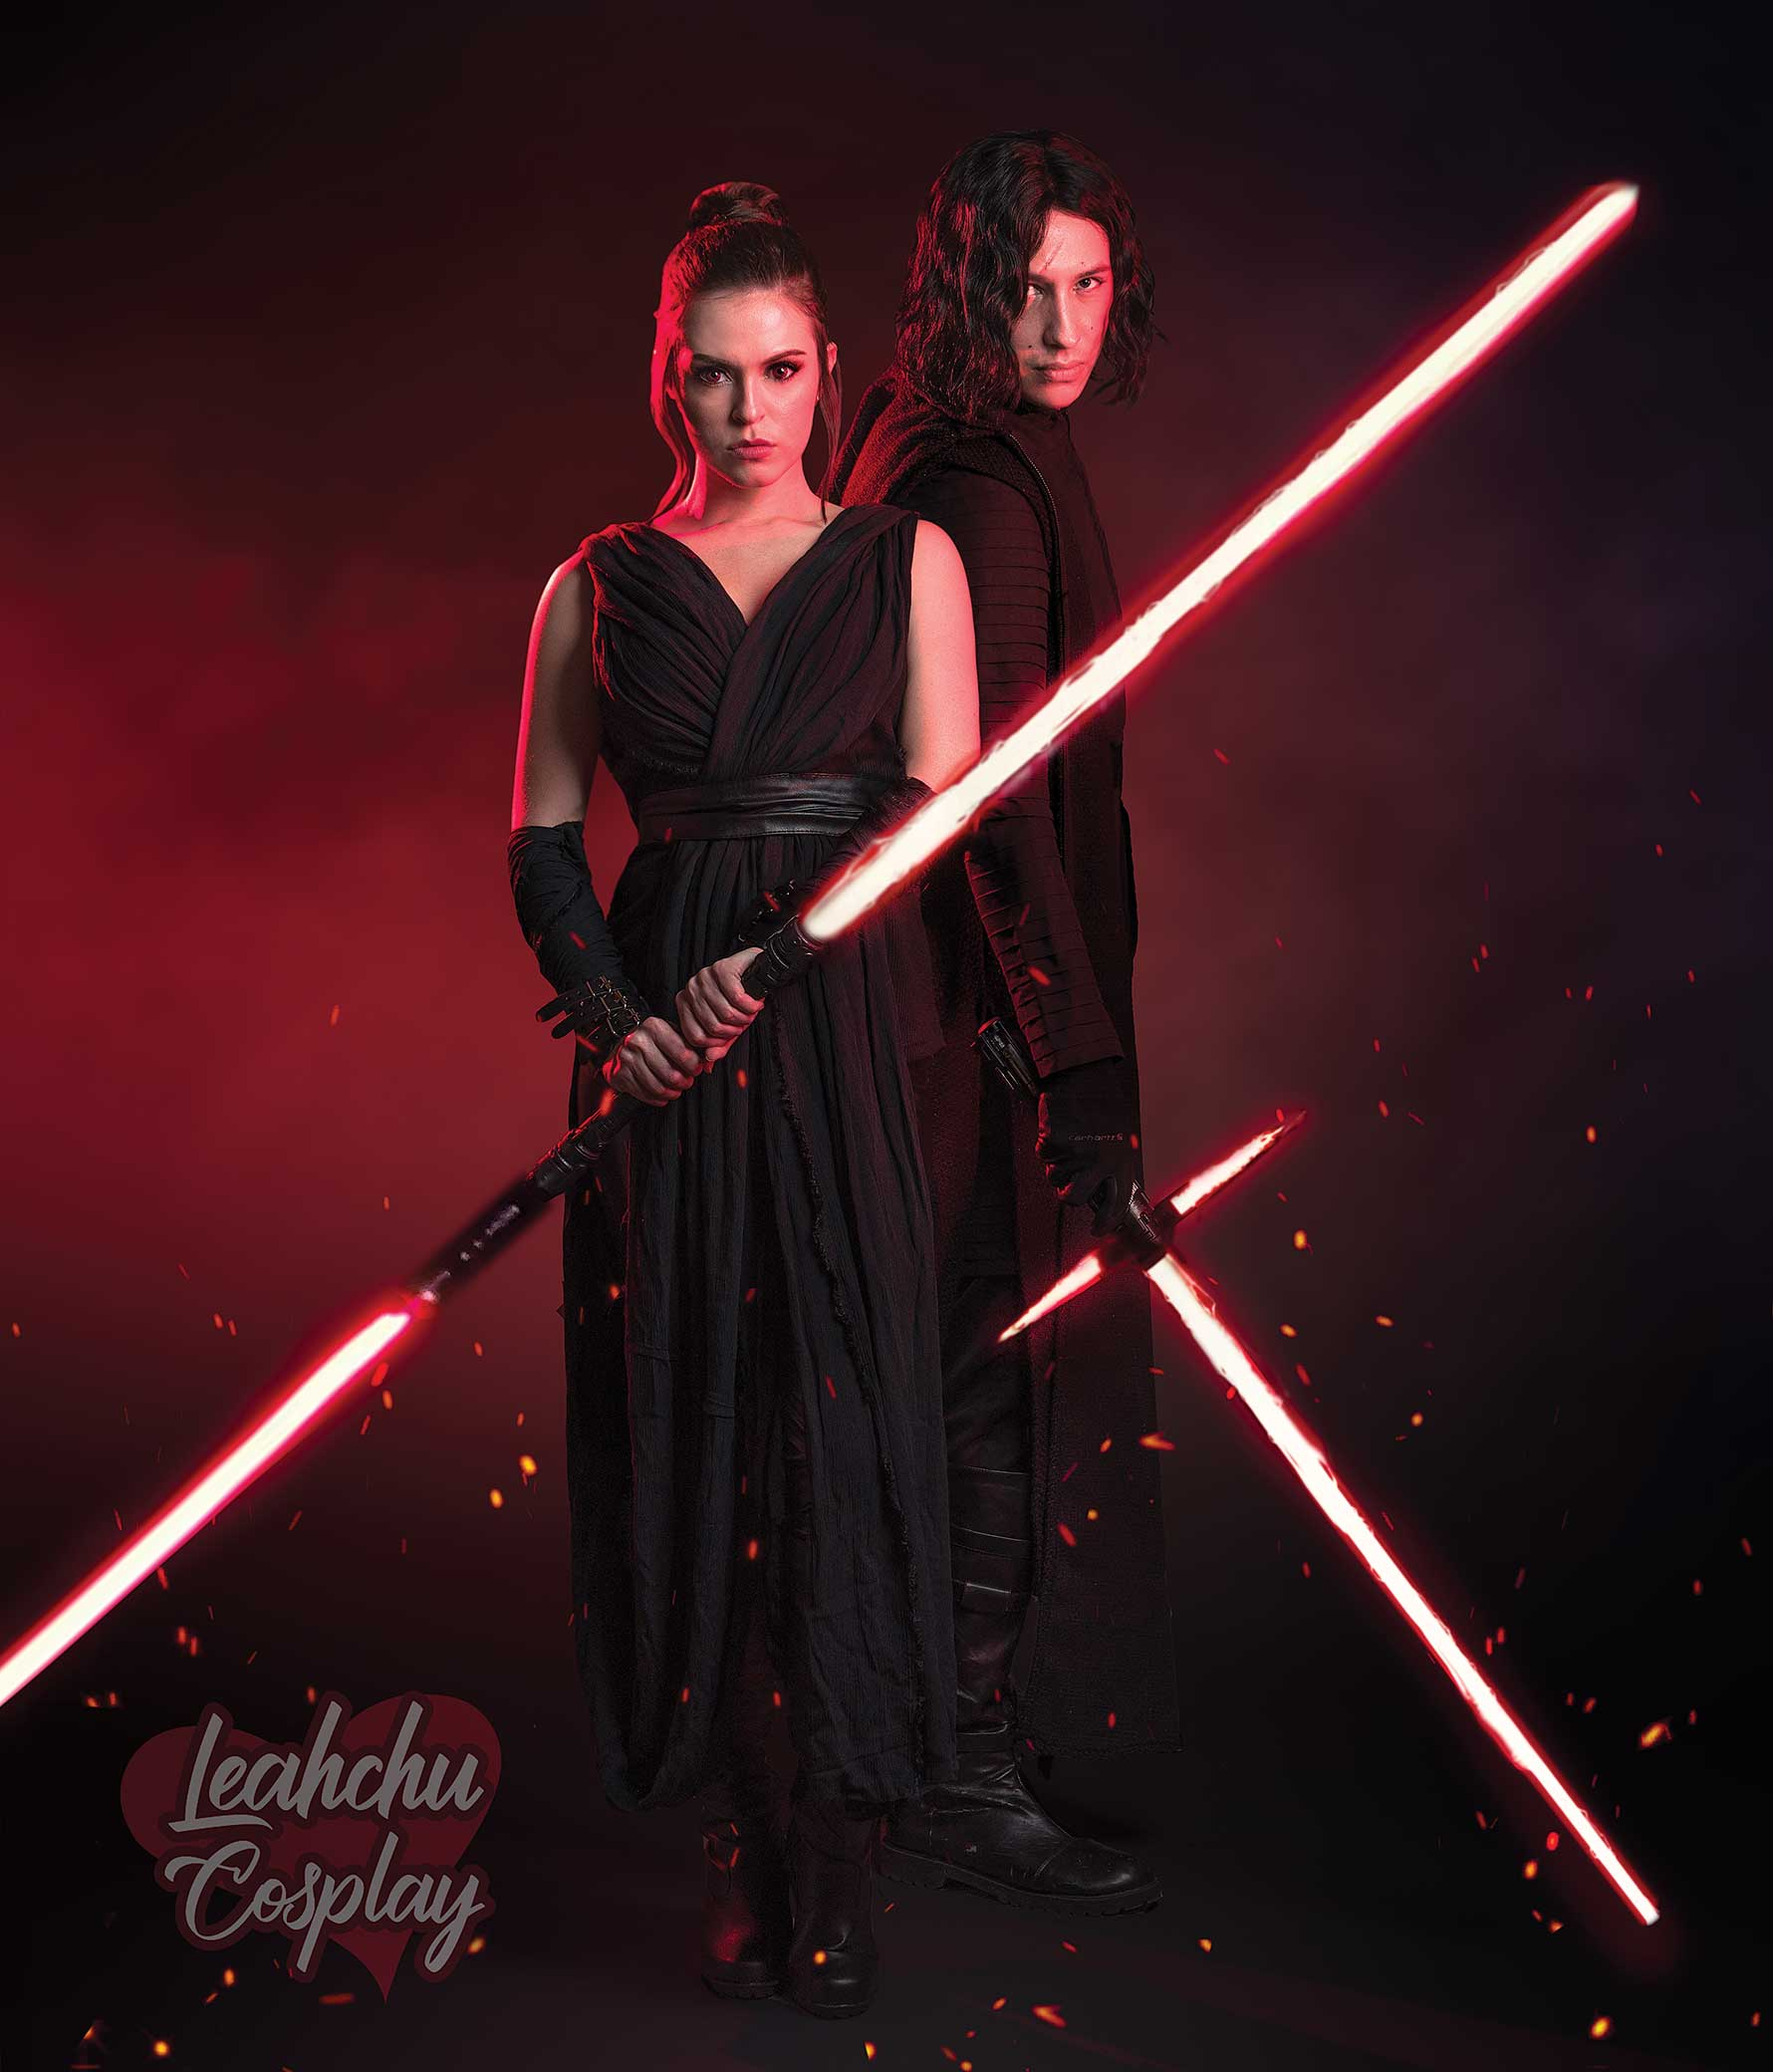 Dark Rey And Kylo Ren Reylo Cosplay Star Wars The Rise Of Skywalker 2 Sold By Leahchu Cosplay On Storenvy